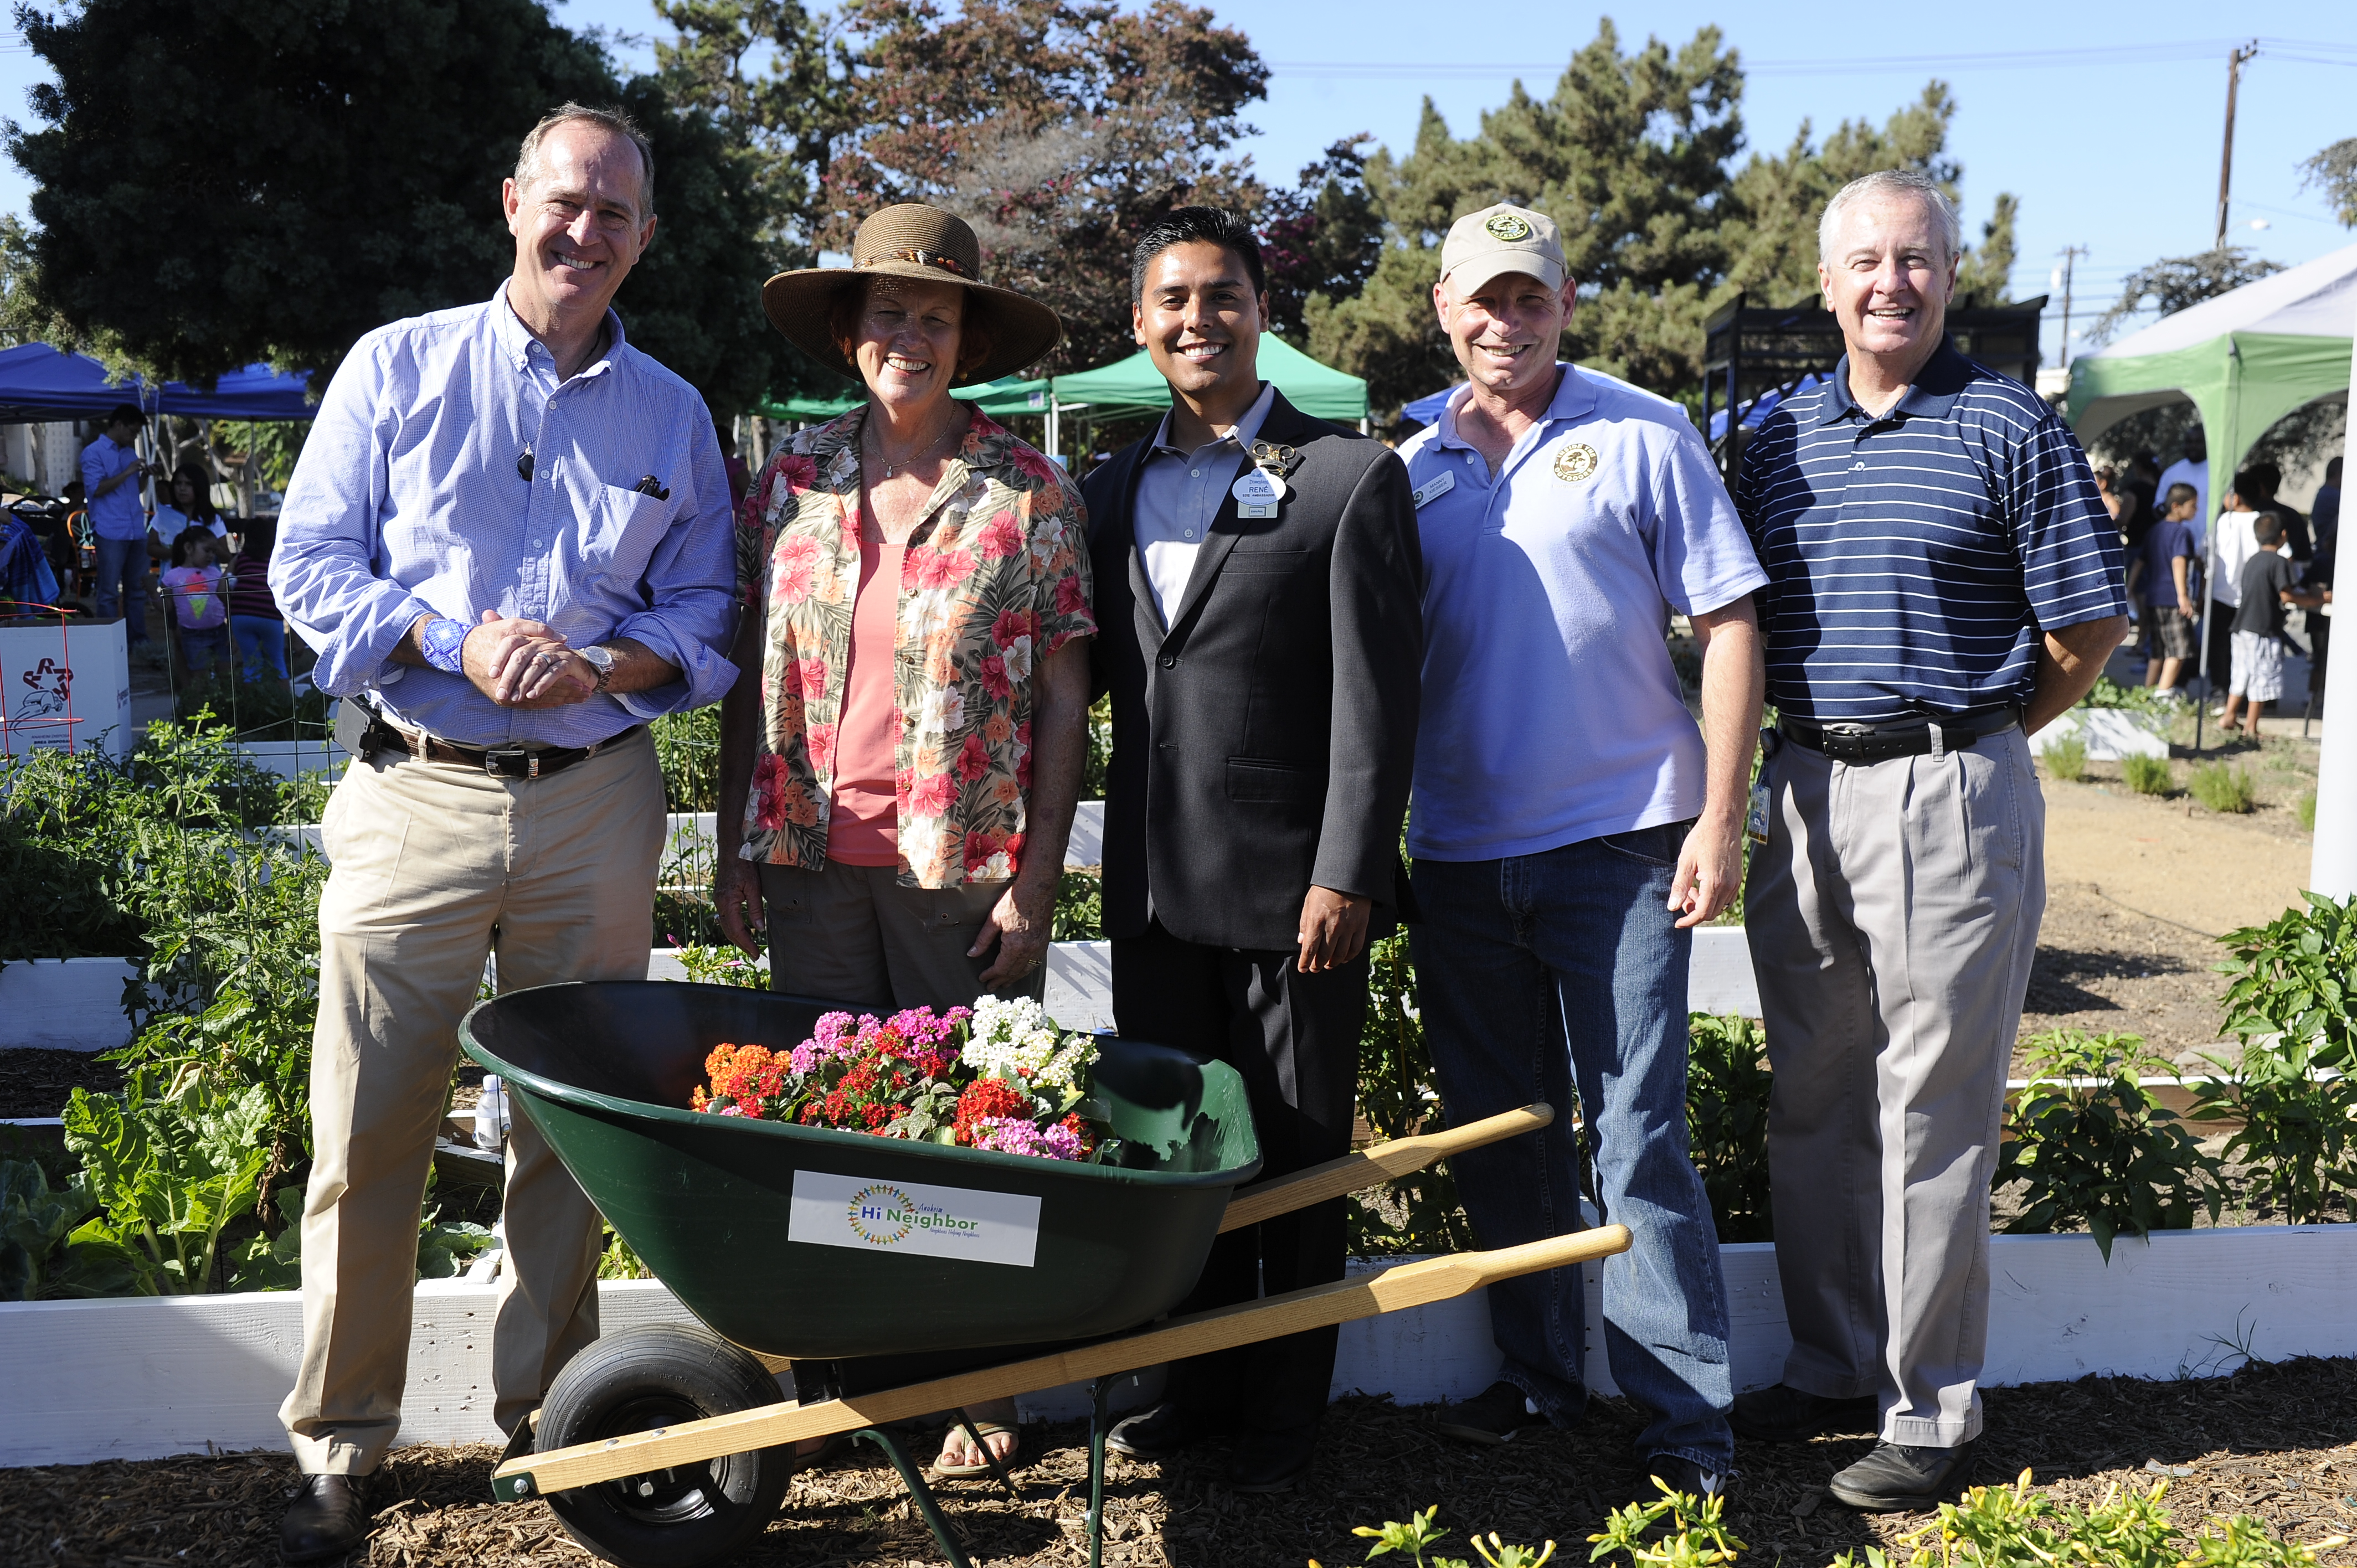 Group photo with a wheel barrel full of produce